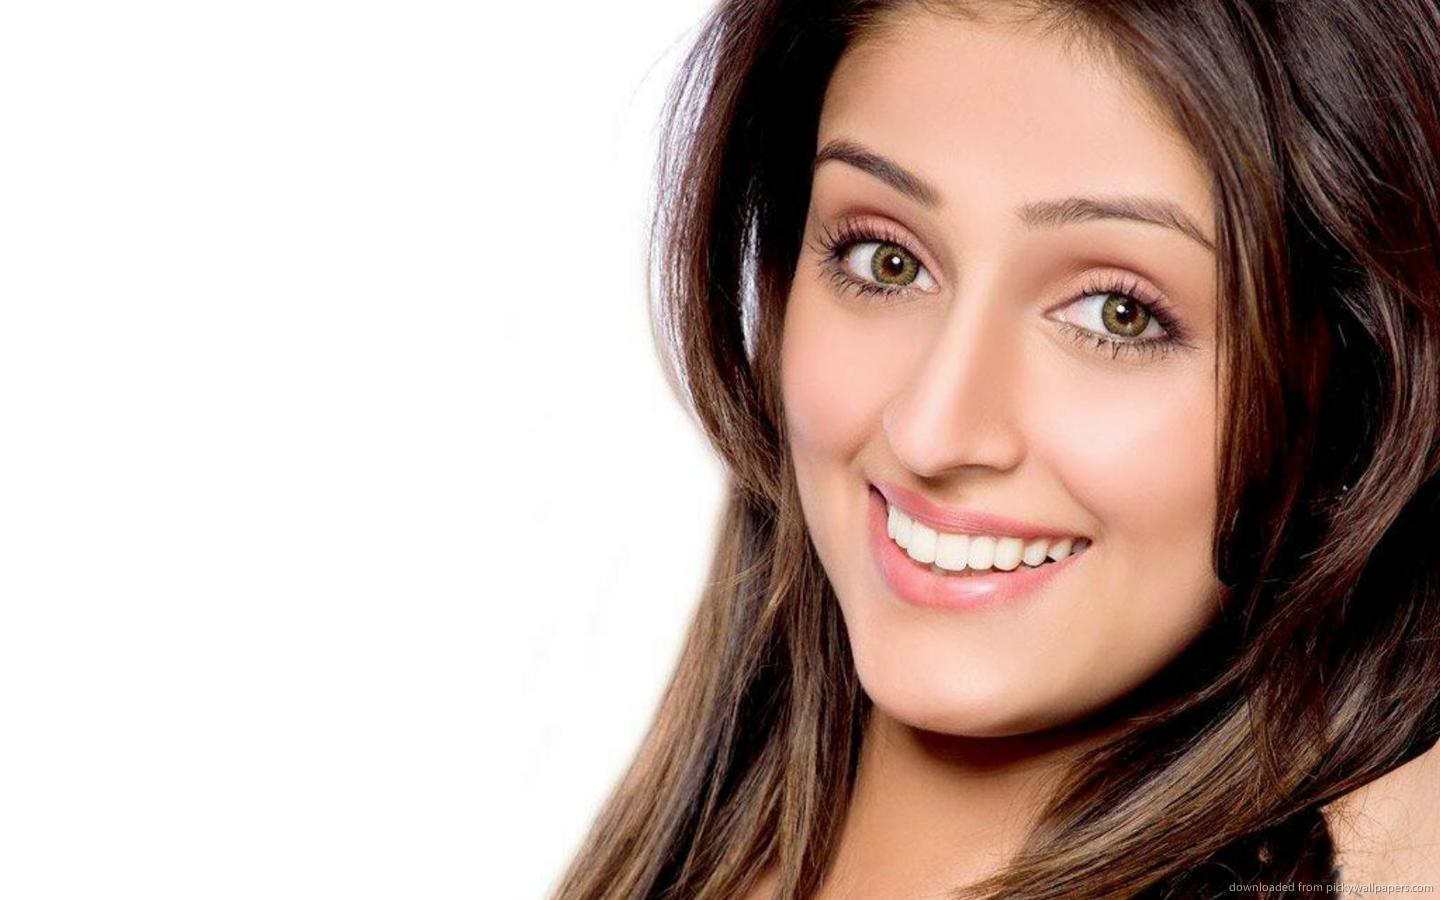 Aarti Chabaria nice click photos woth smile wallpapers